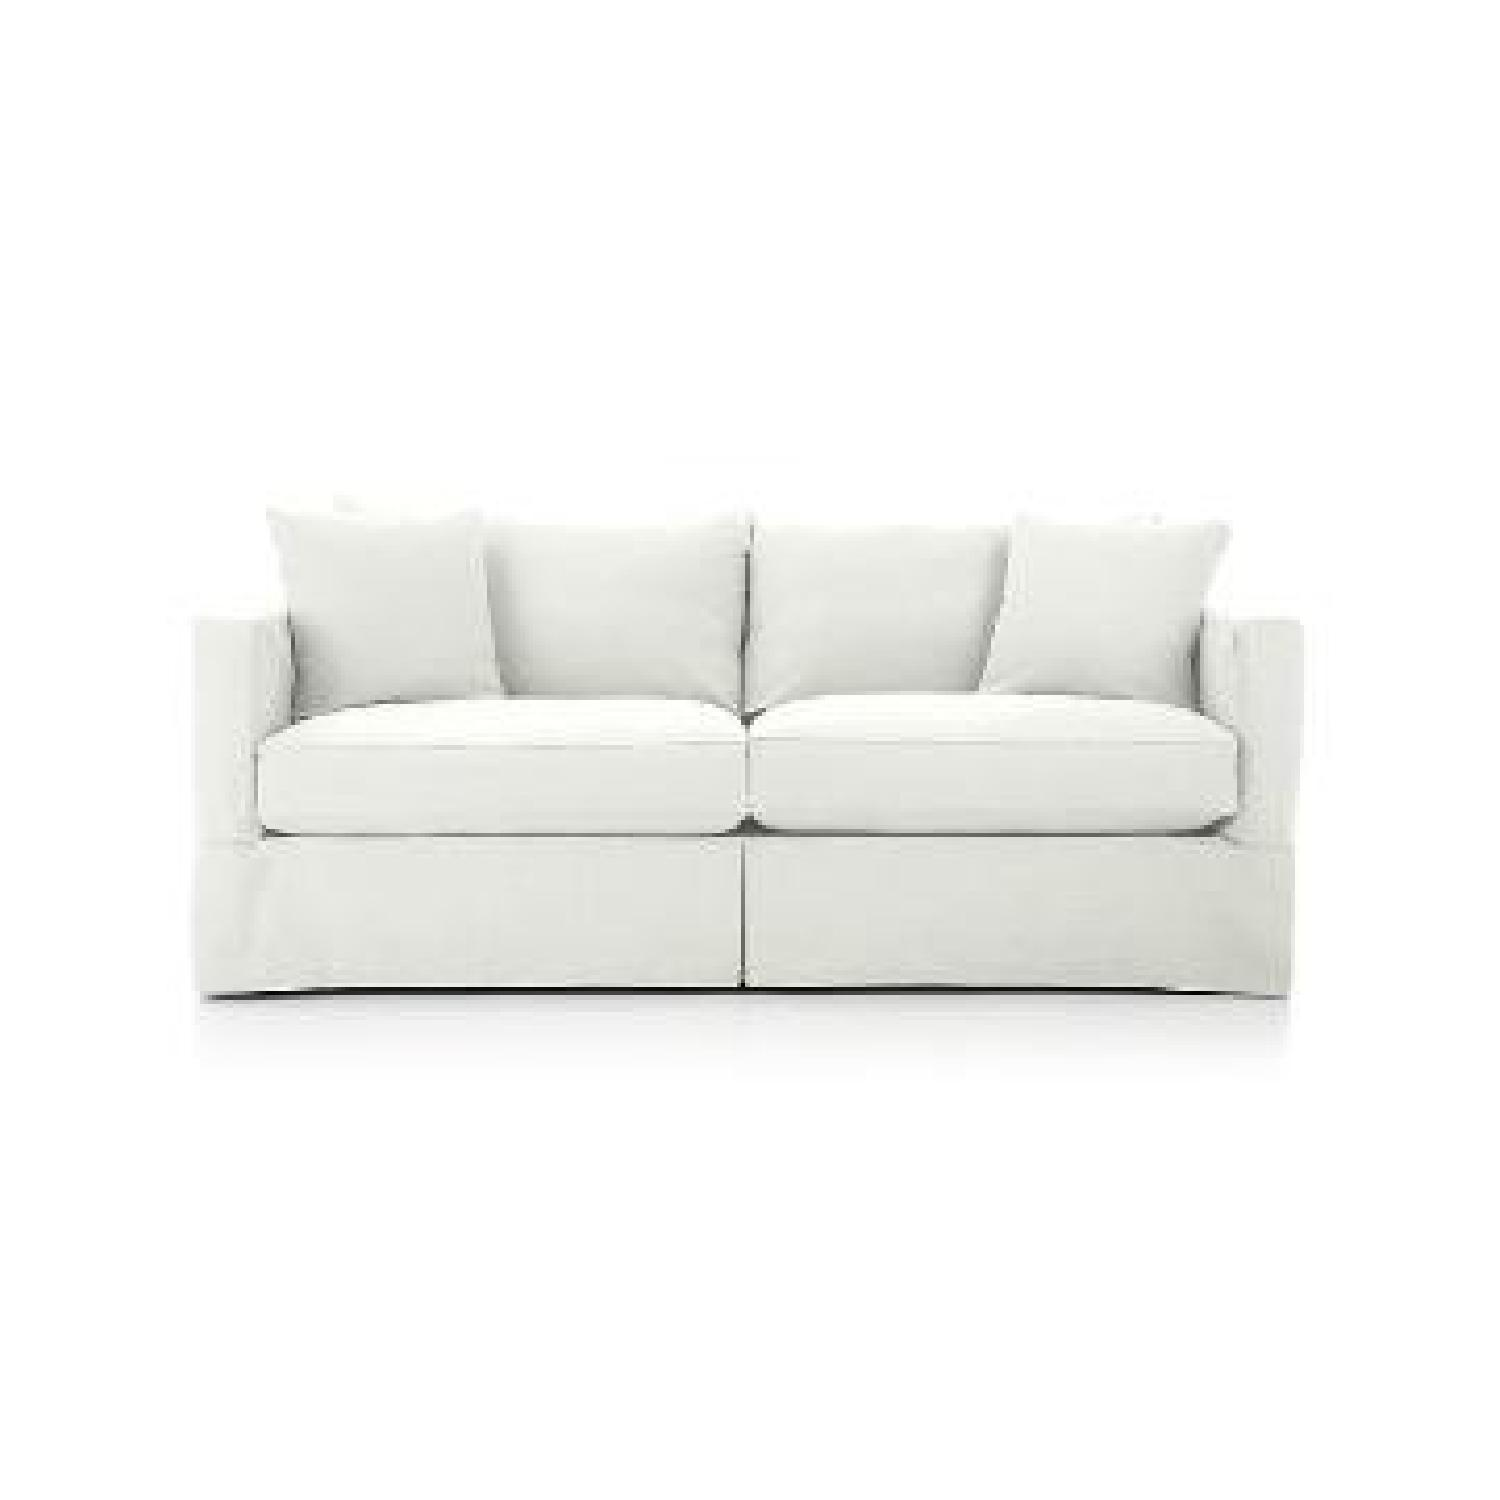 Crate & Barrel Willow Queen Sleeper Sofa - image-6